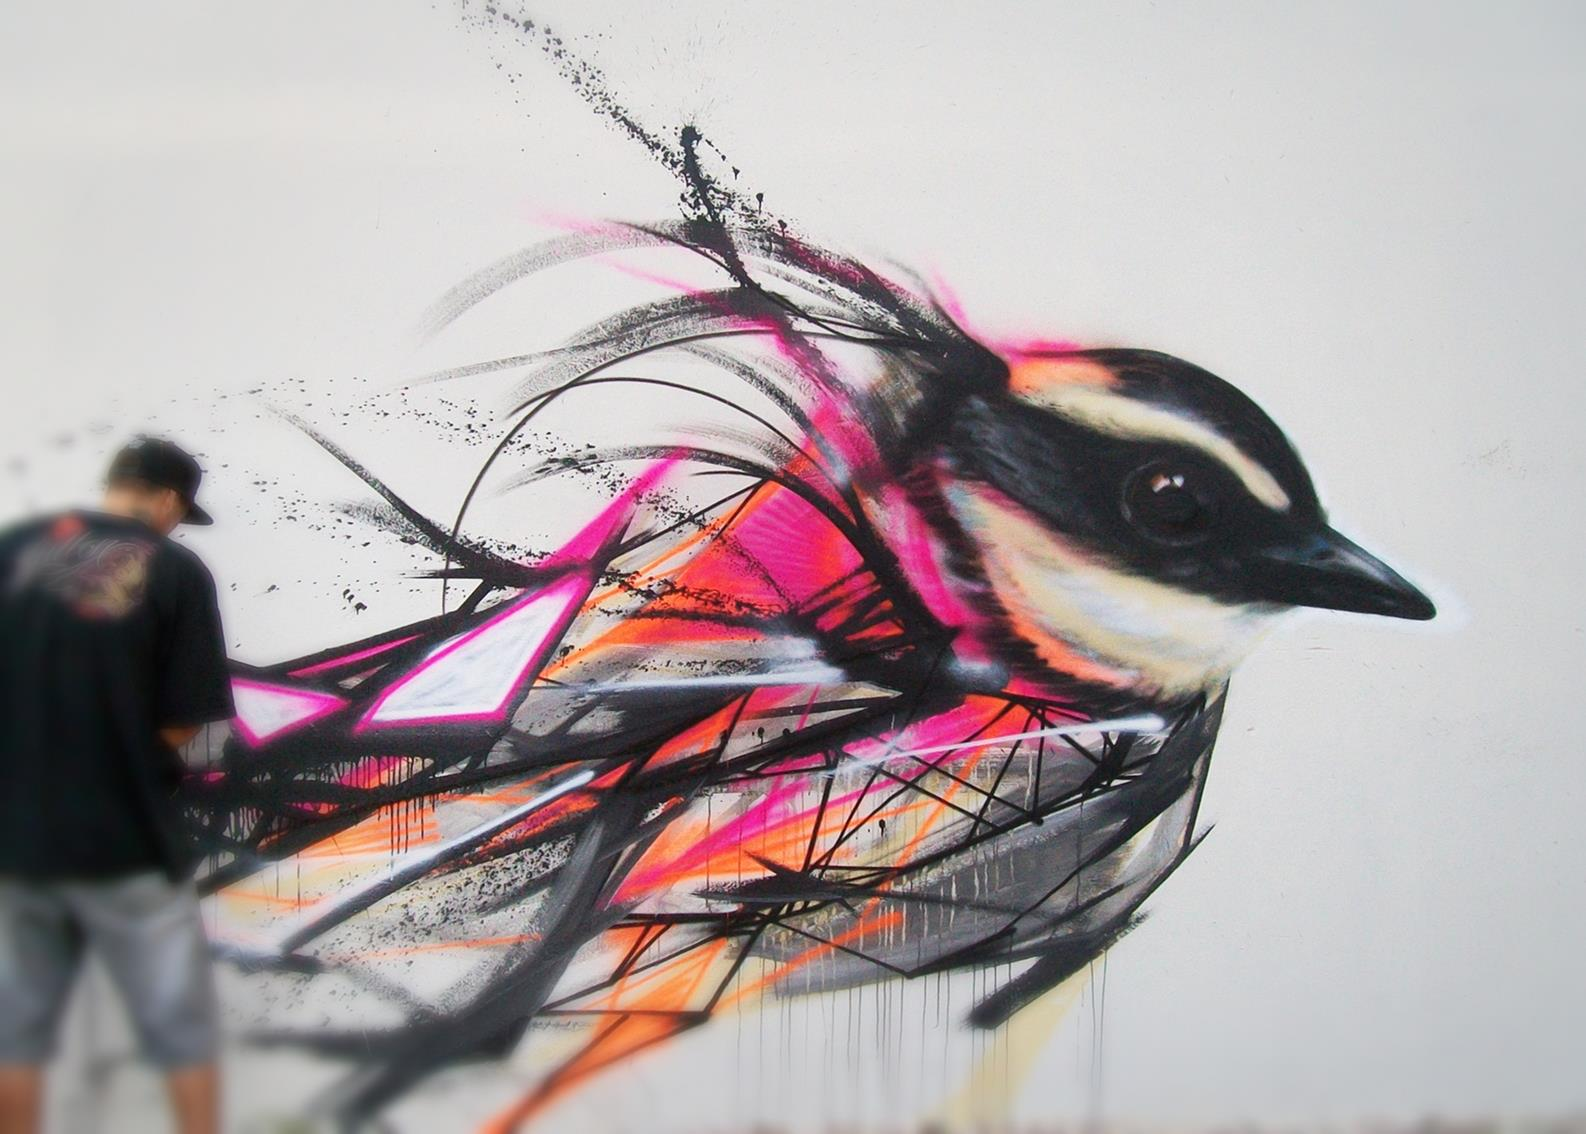 graffiti birds by brazilian artist l7m 6 Graffiti Birds by Brazilian Artist L7M